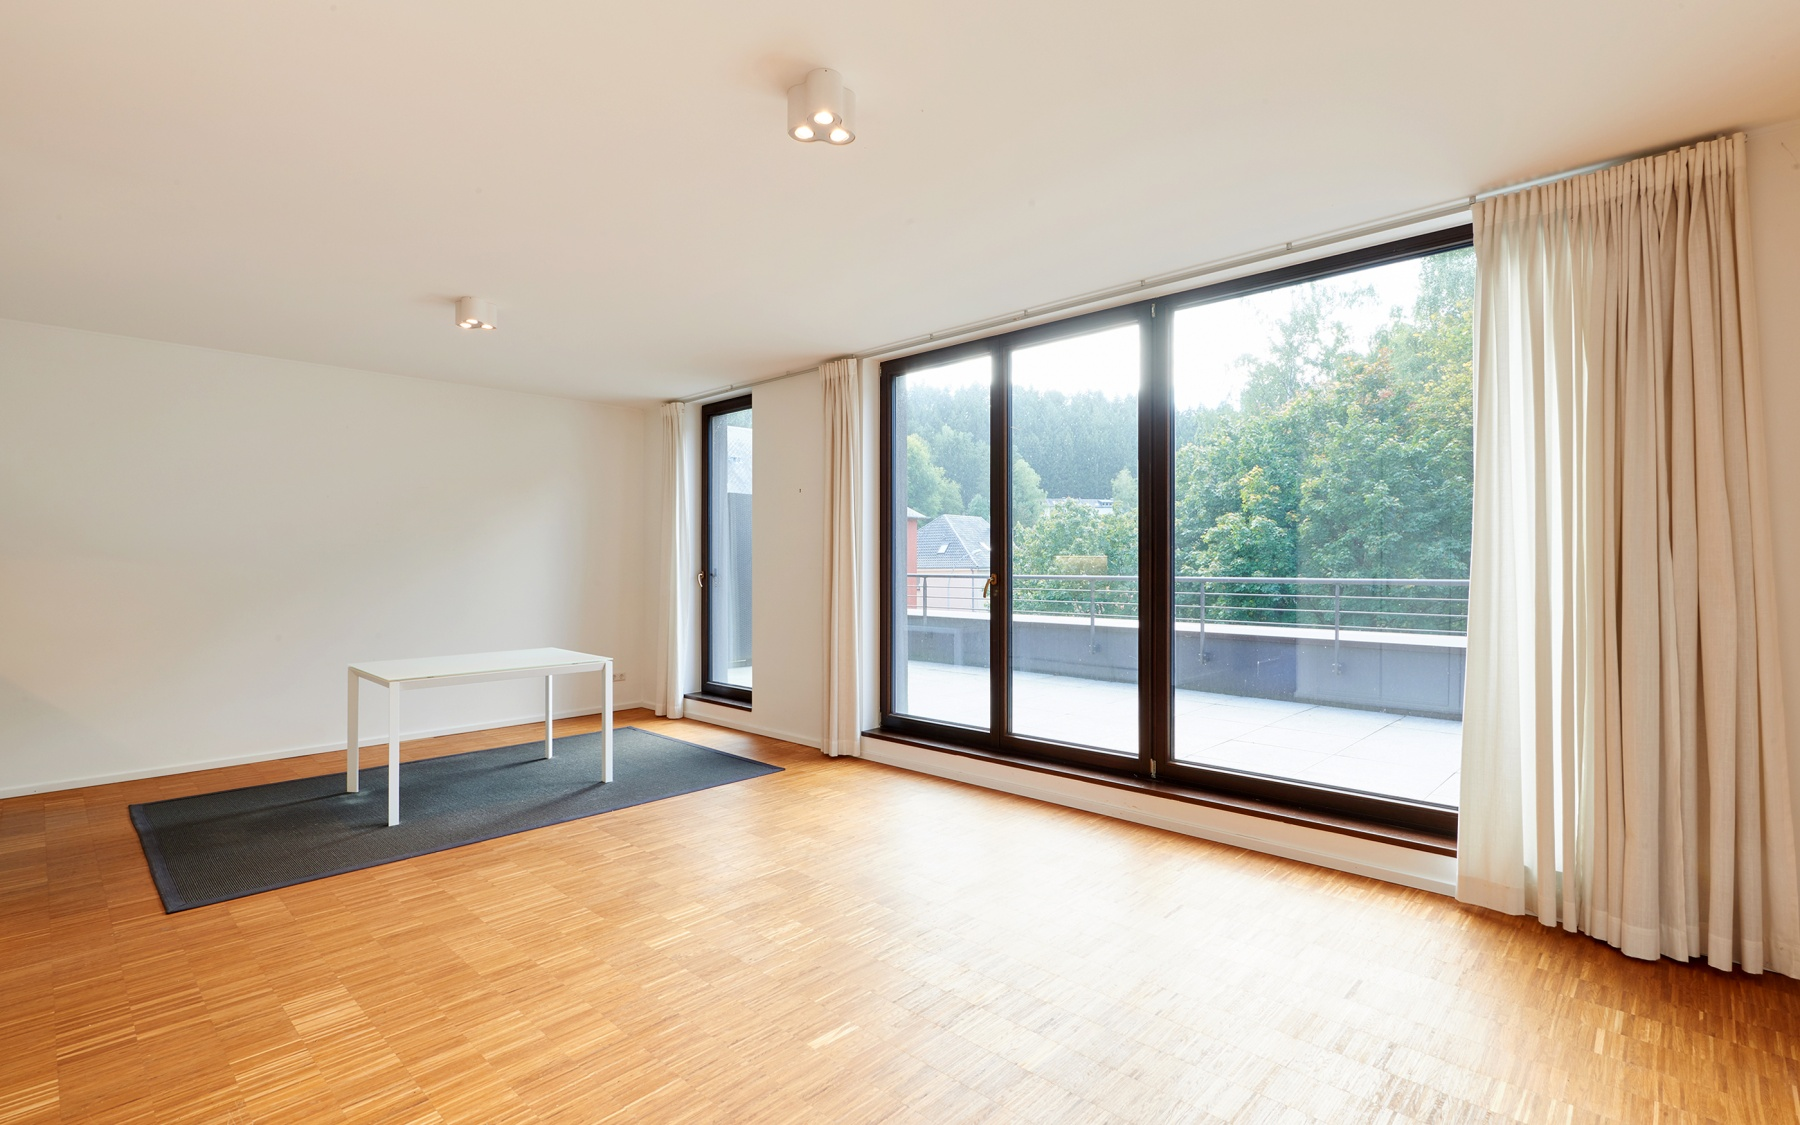 Penthouse in Luxembourg-Mühlenbach